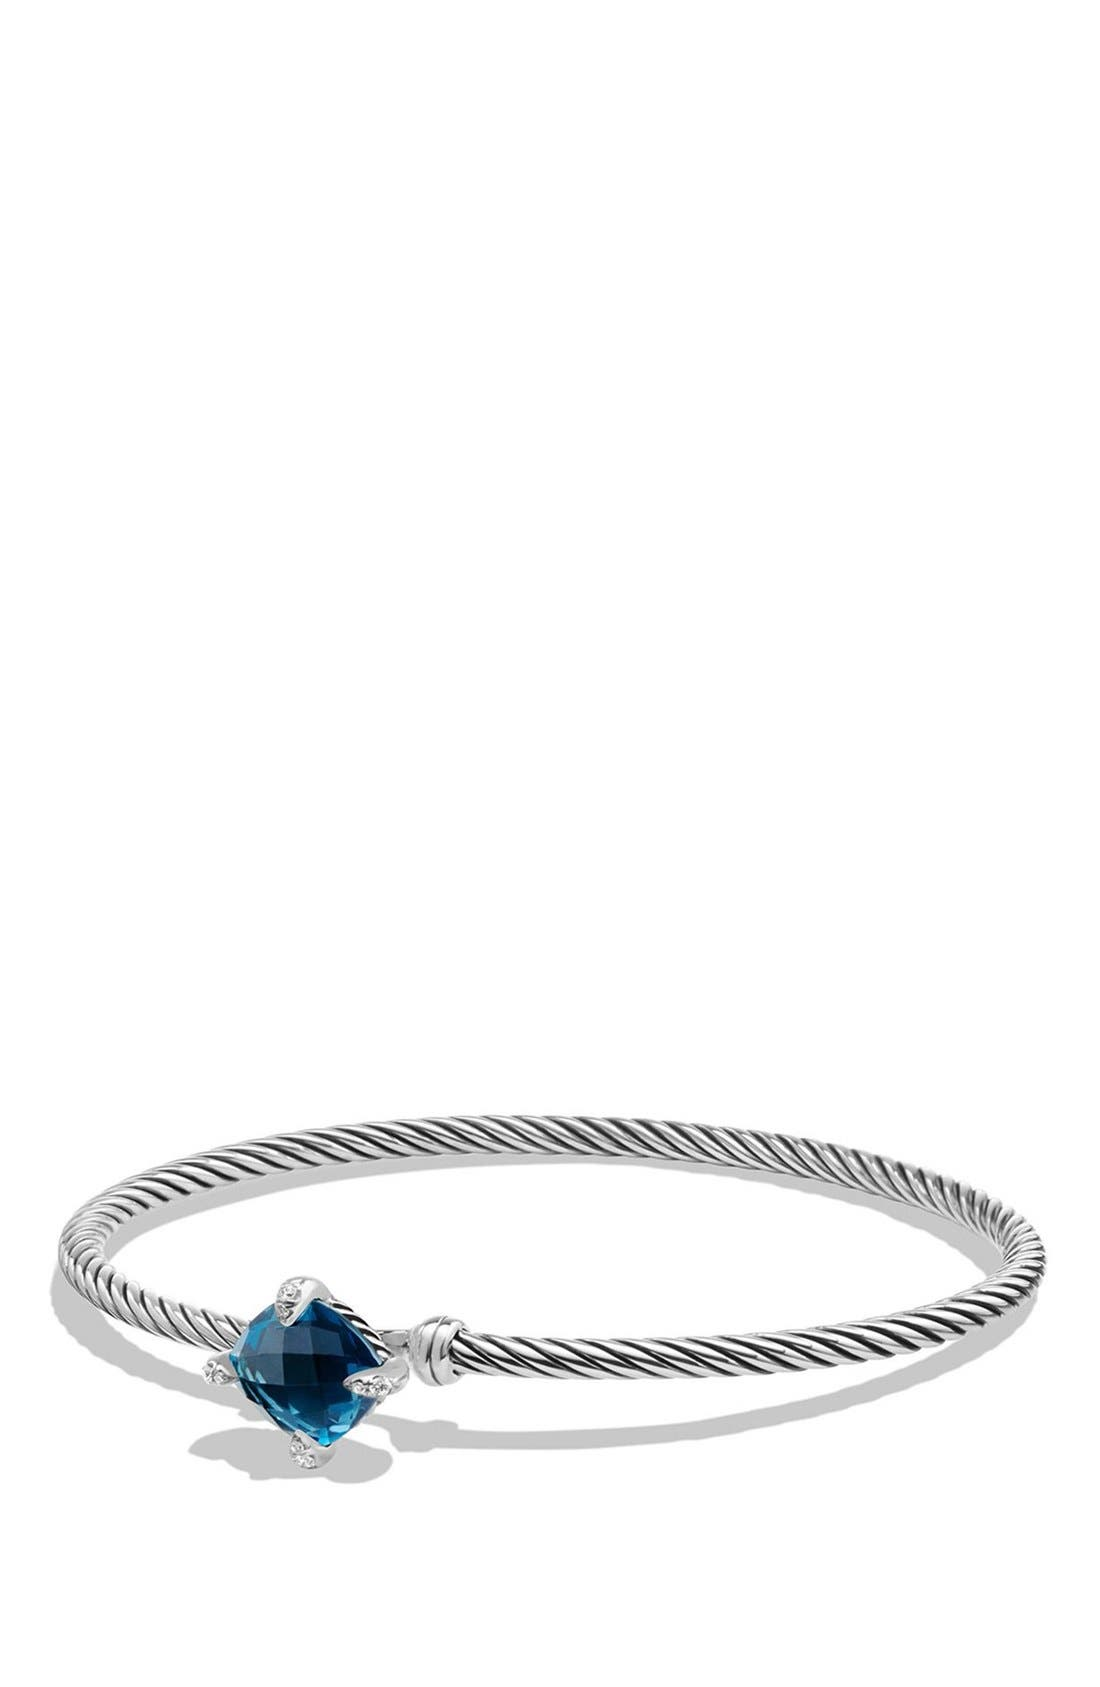 Main Image - David Yurman 'Châtelaine' Bracelet with Diamonds